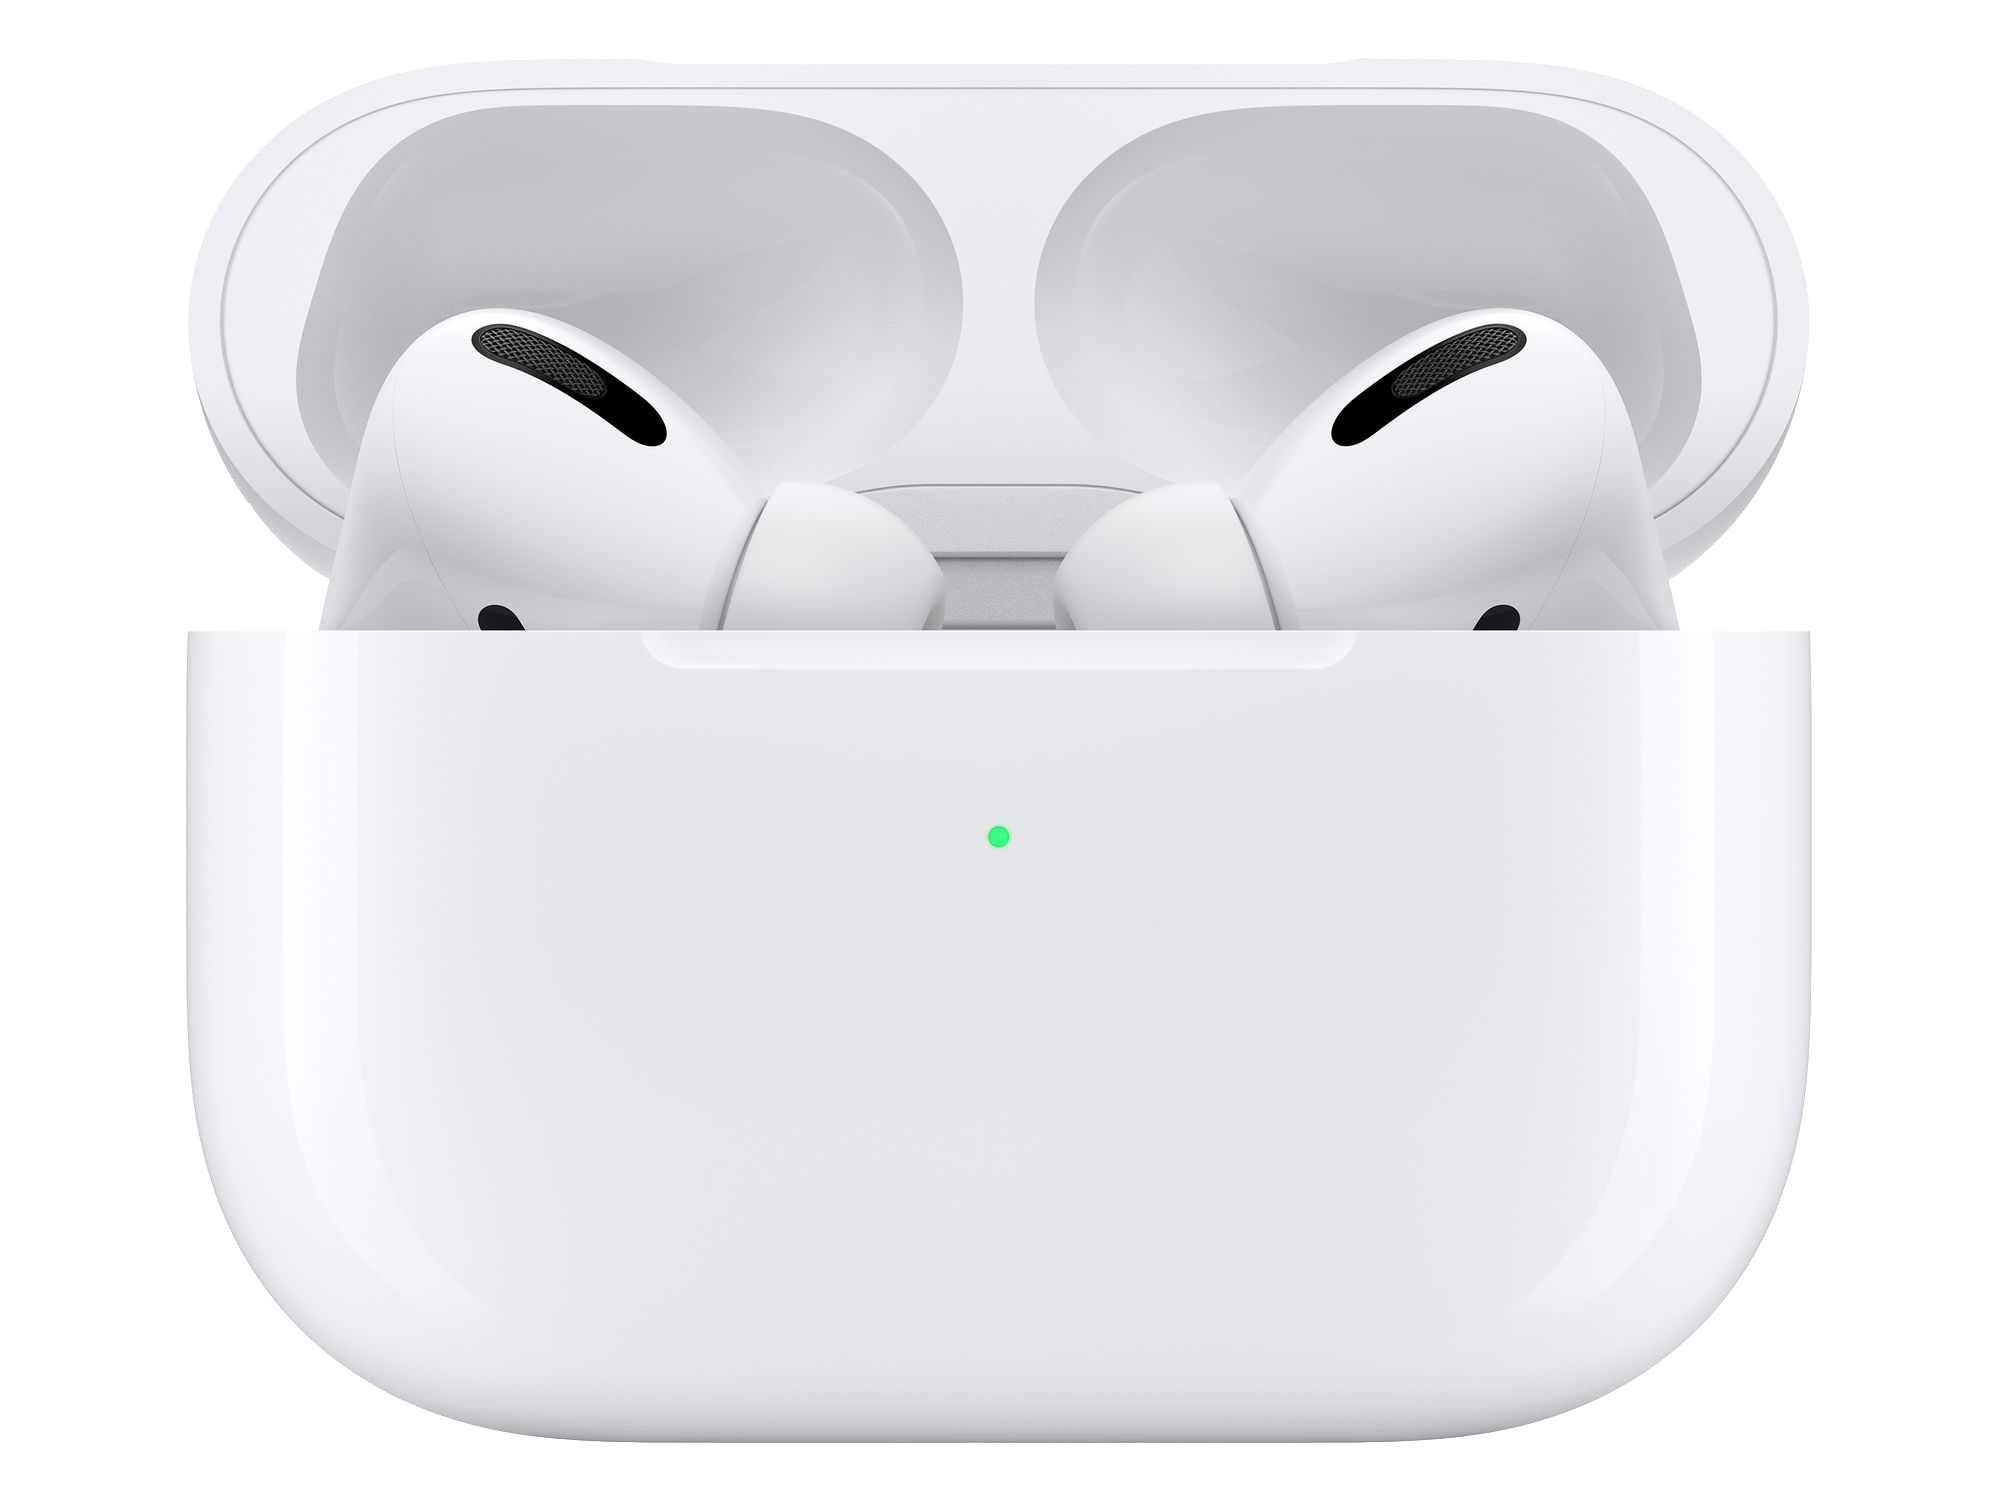 Airpods Pro inkl. Wireless Ladecase weiss